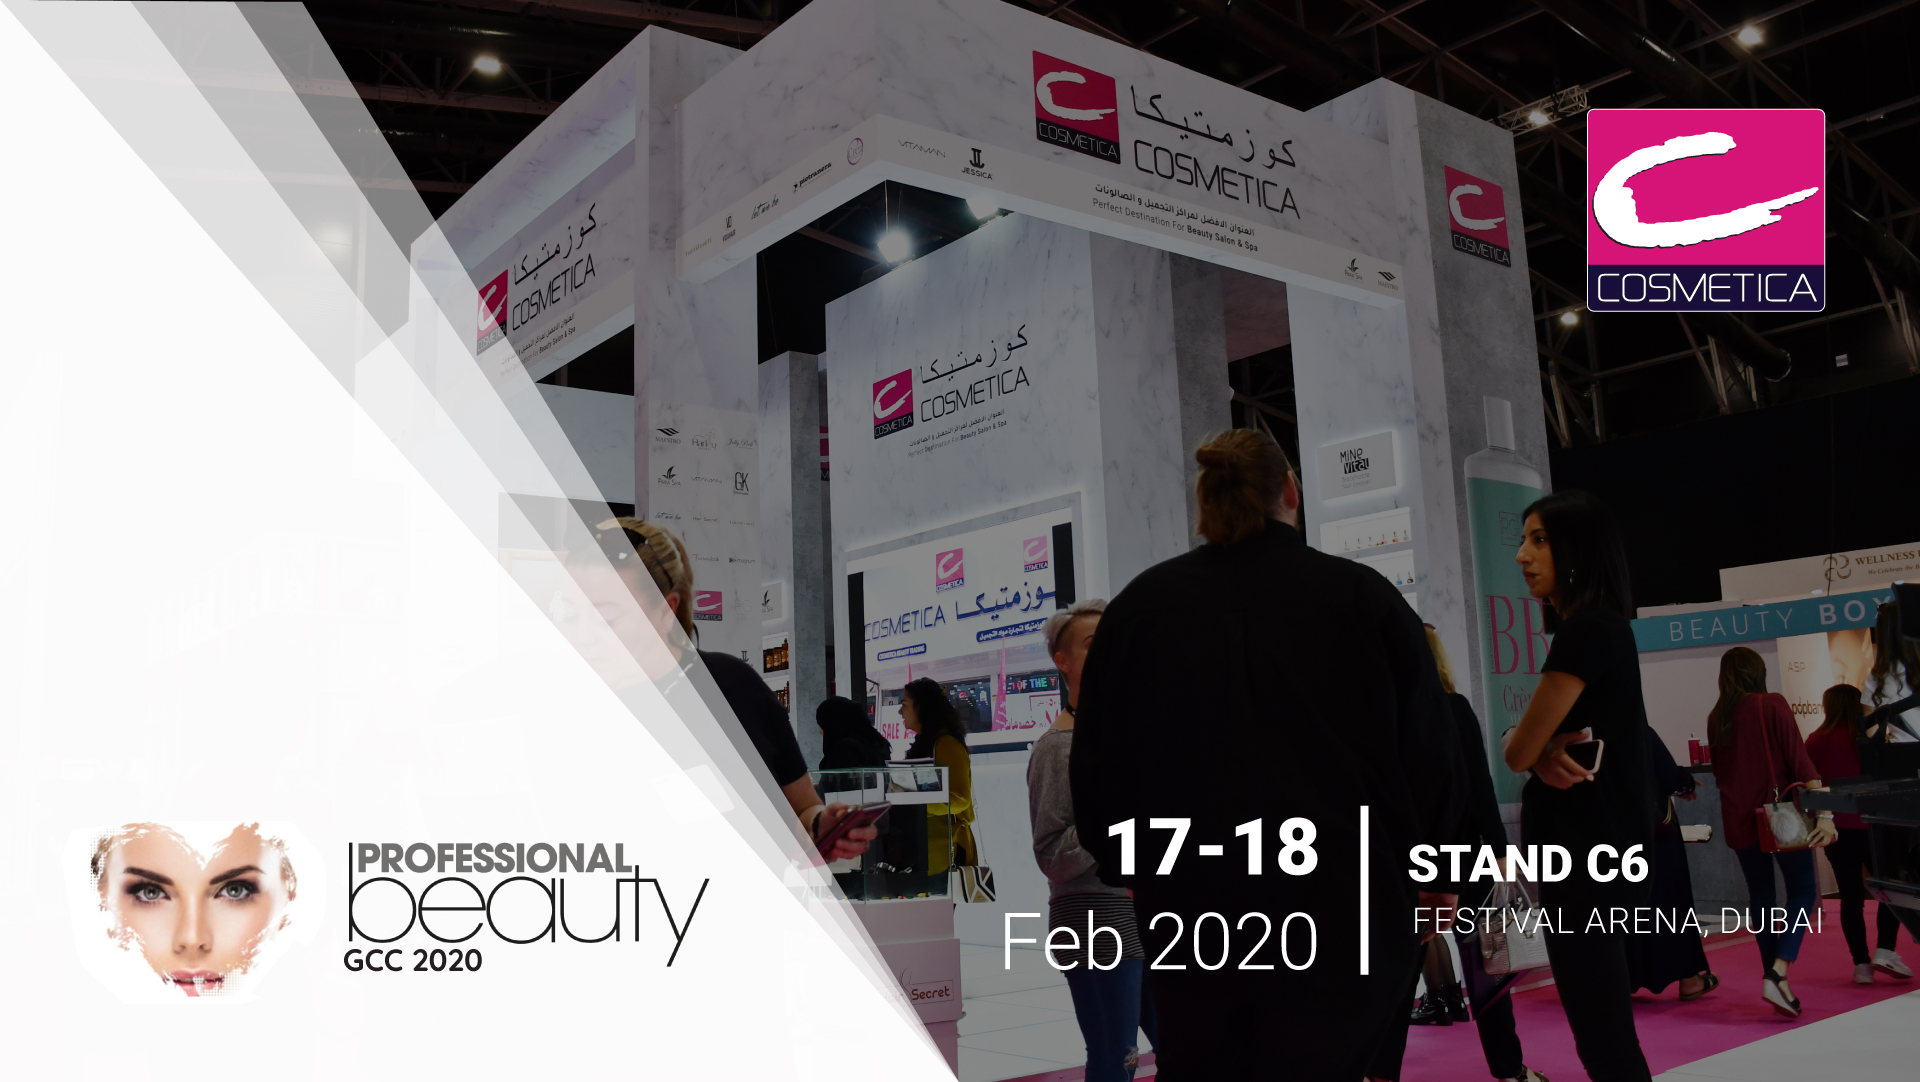 Successfully participated in Professional Beauty GCC 2020, Proud to be the Bronze Sponsor for the event